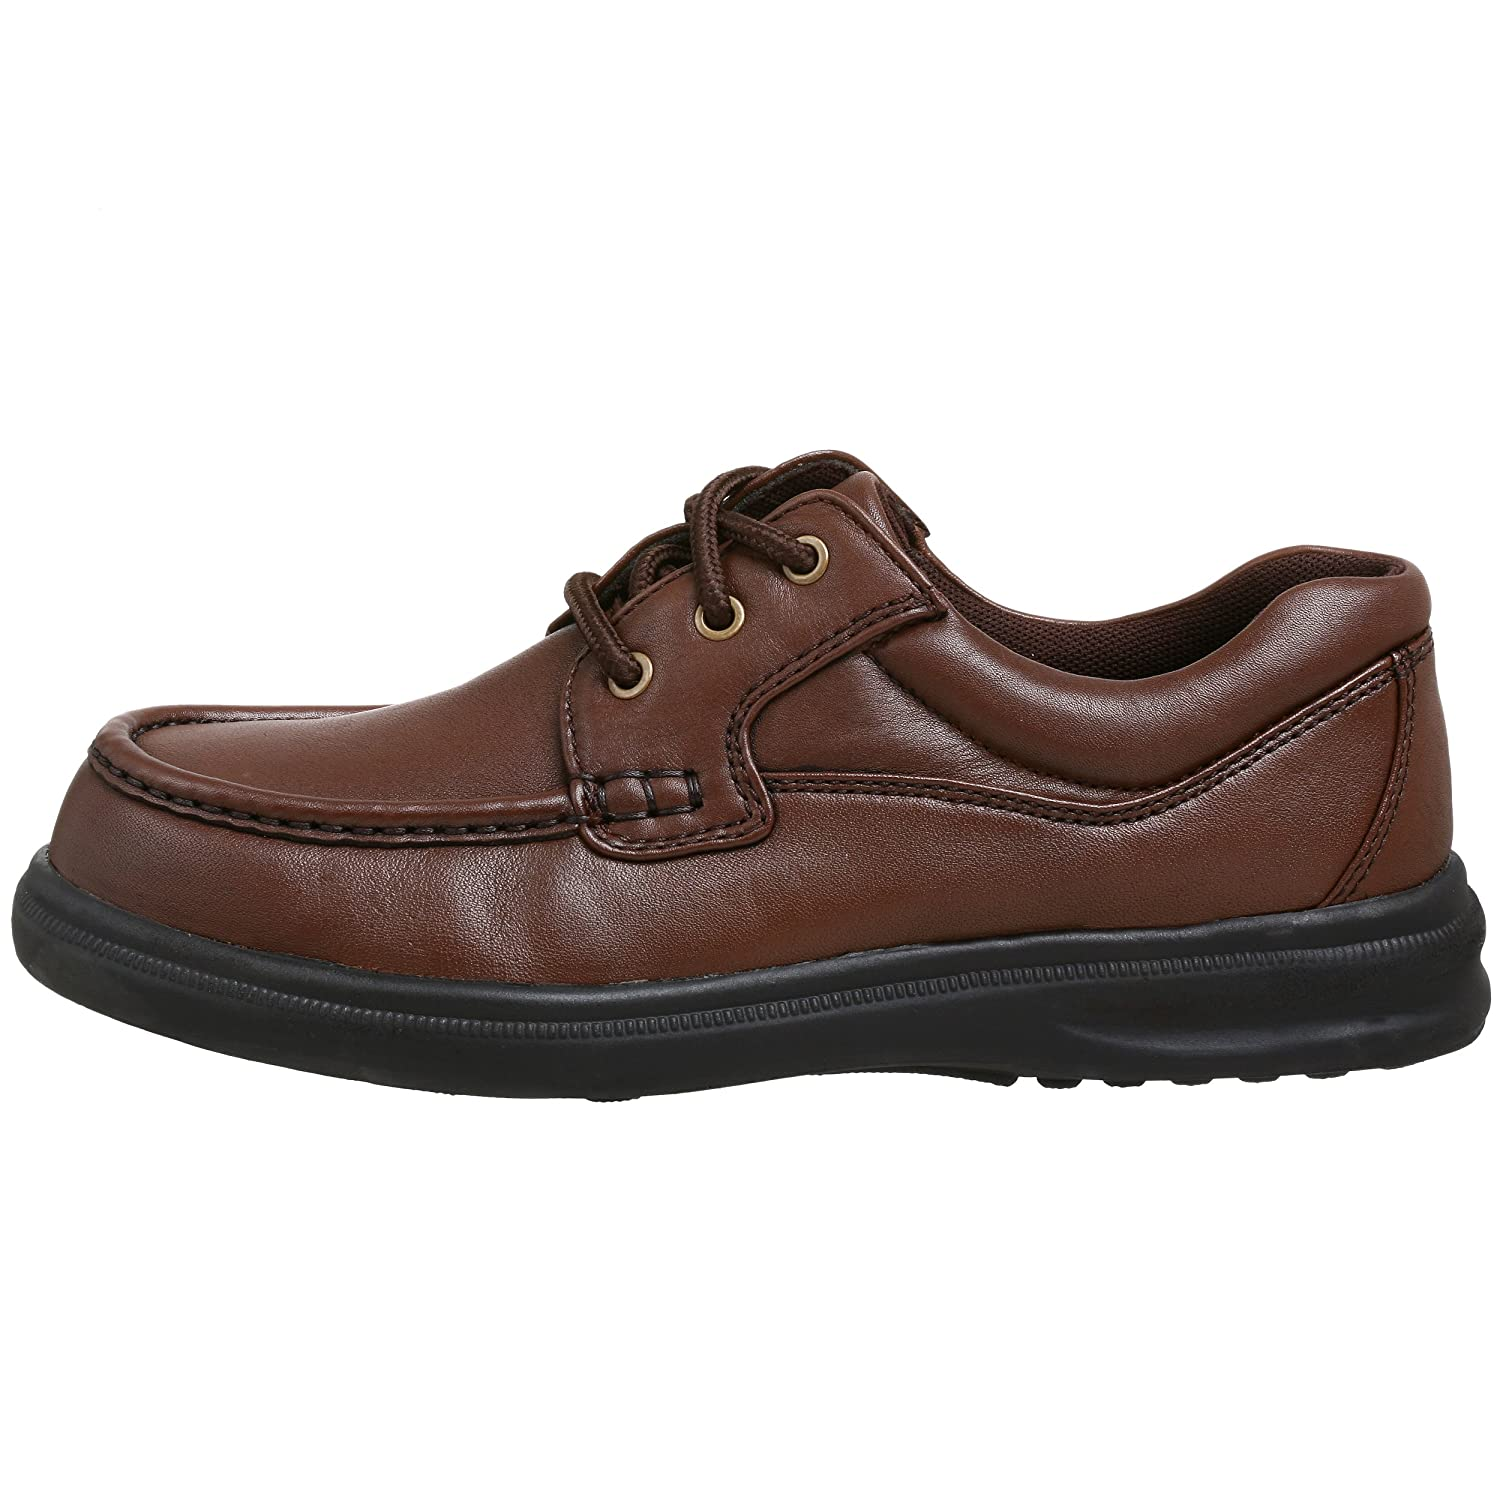 Hush Puppies Men's Gus Oxford B001AWY88M 7 W US|Tan